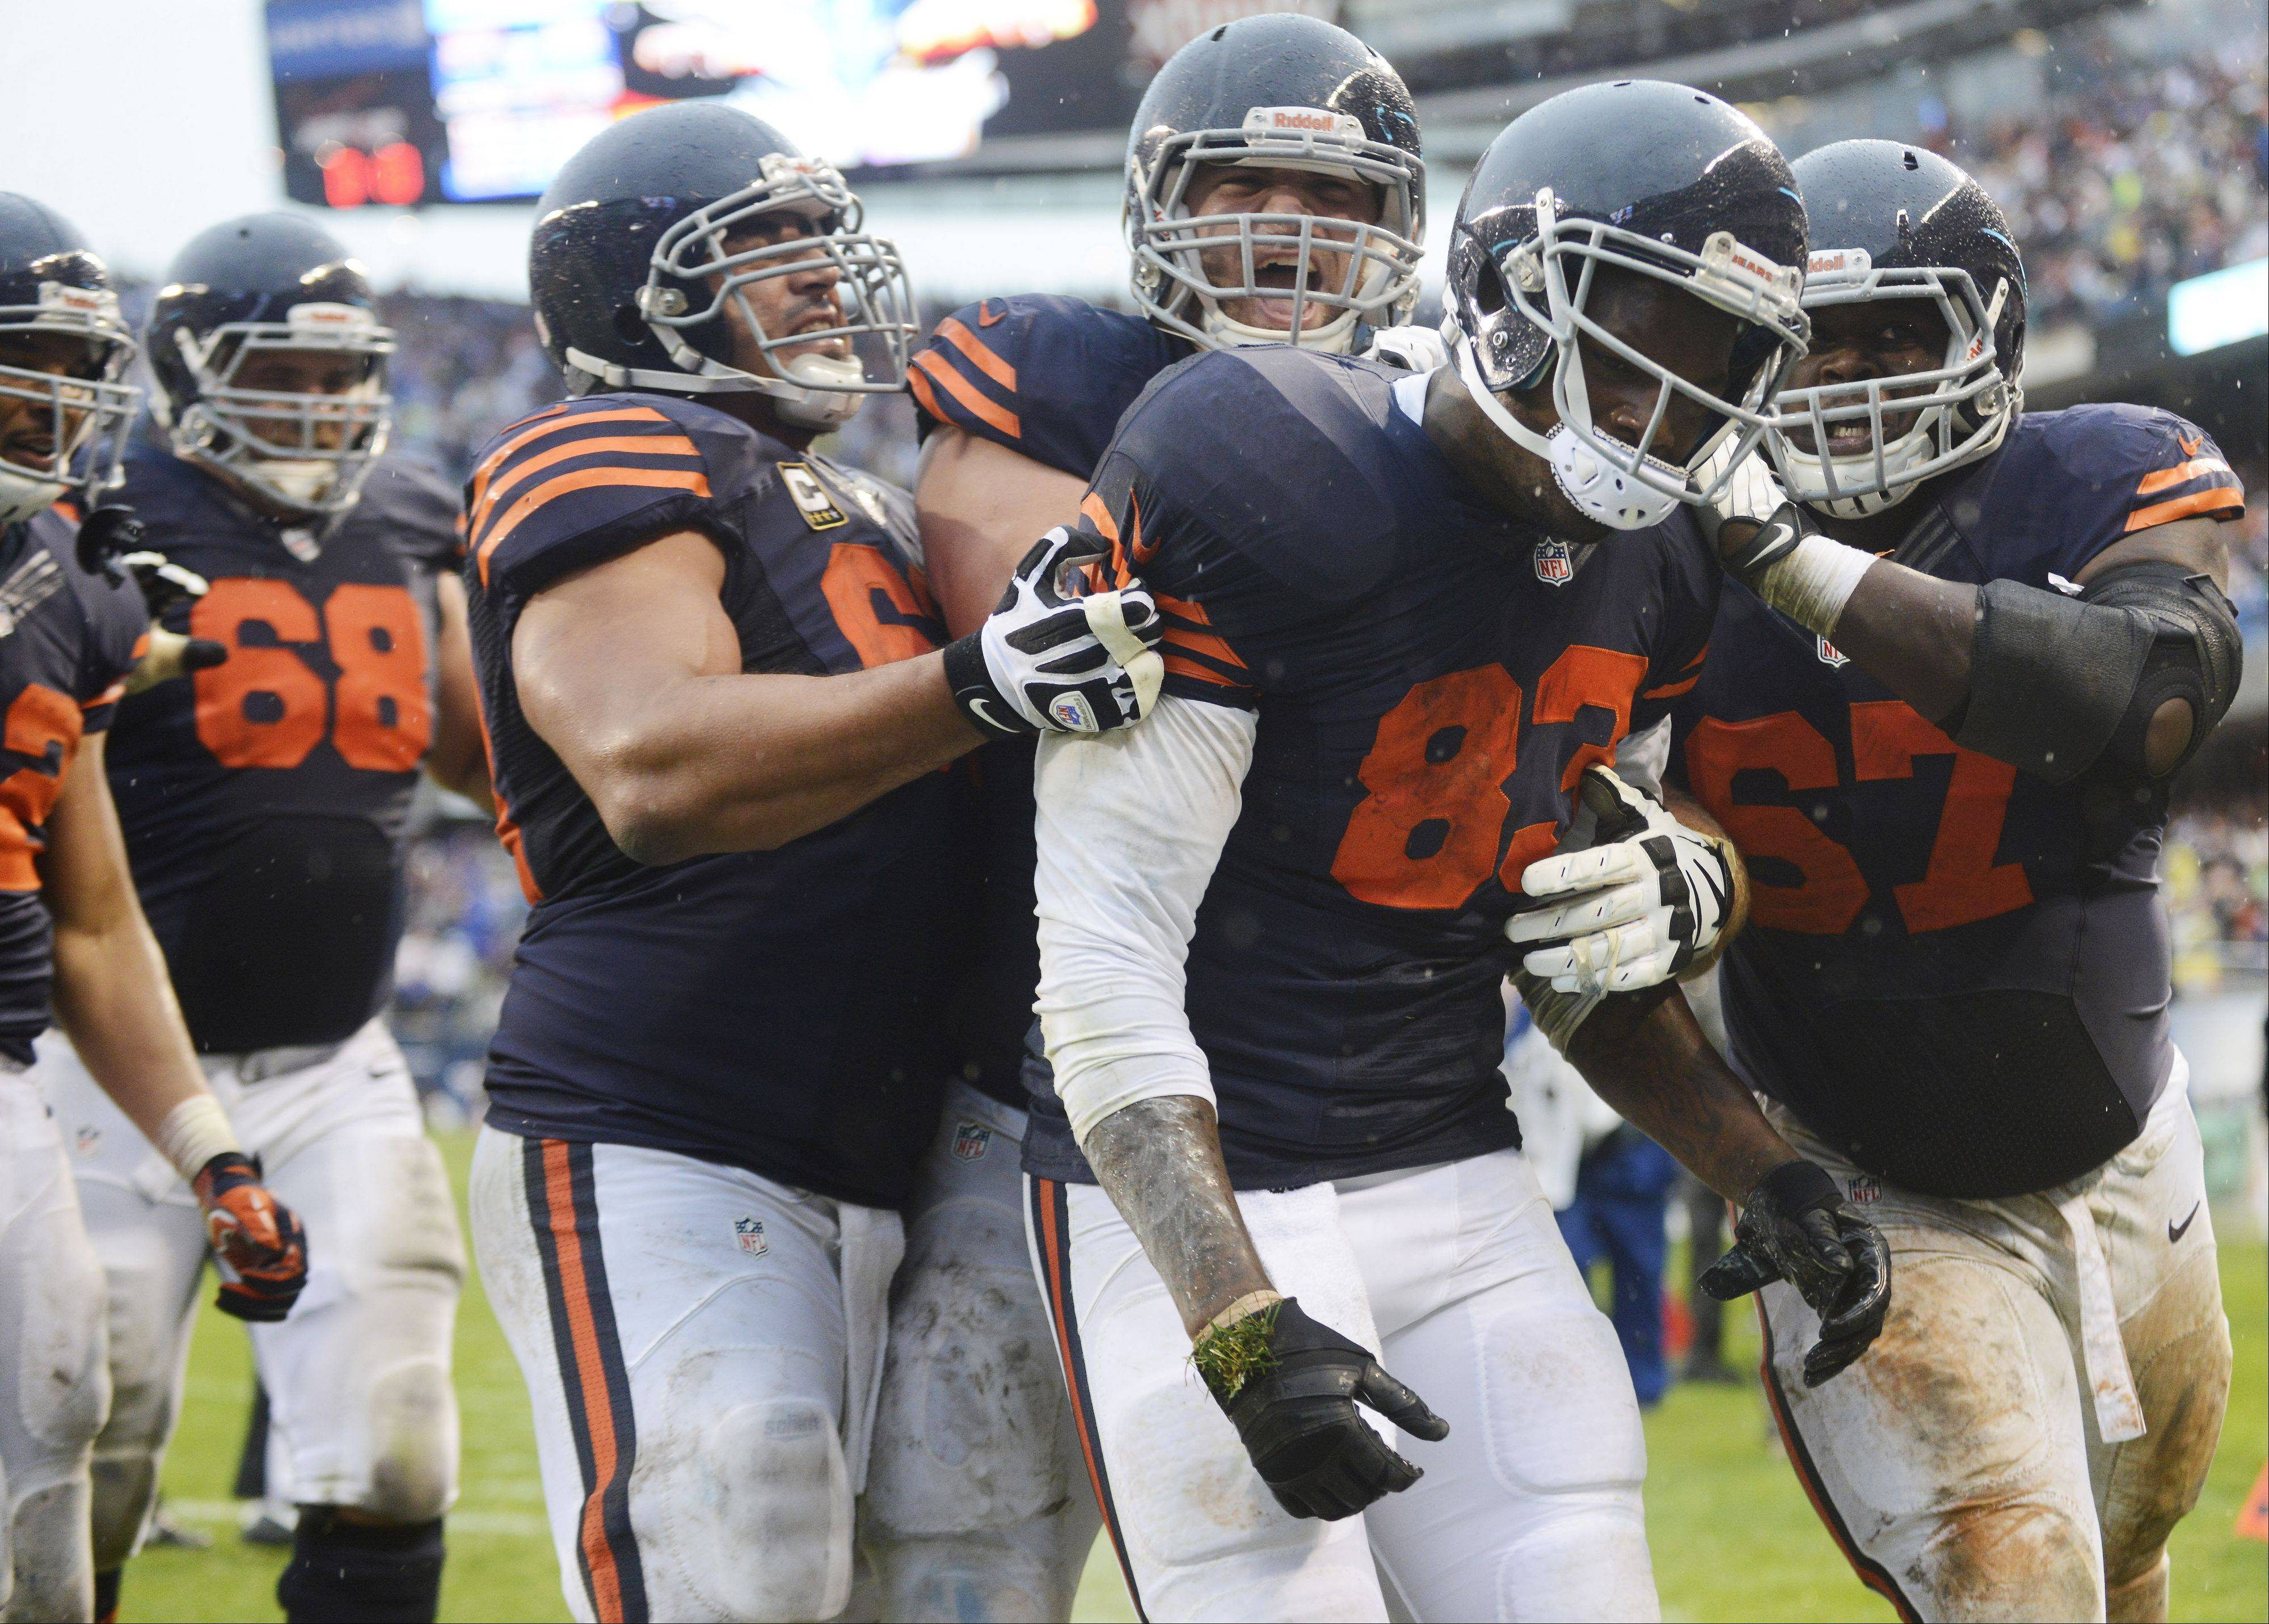 Chicago Bears tight end Martellus Bennett is mobbed by teammates after making a touchdown catch with 10 seconds left during Sunday�s game against the Minnesota Vikings at Soldier Field.